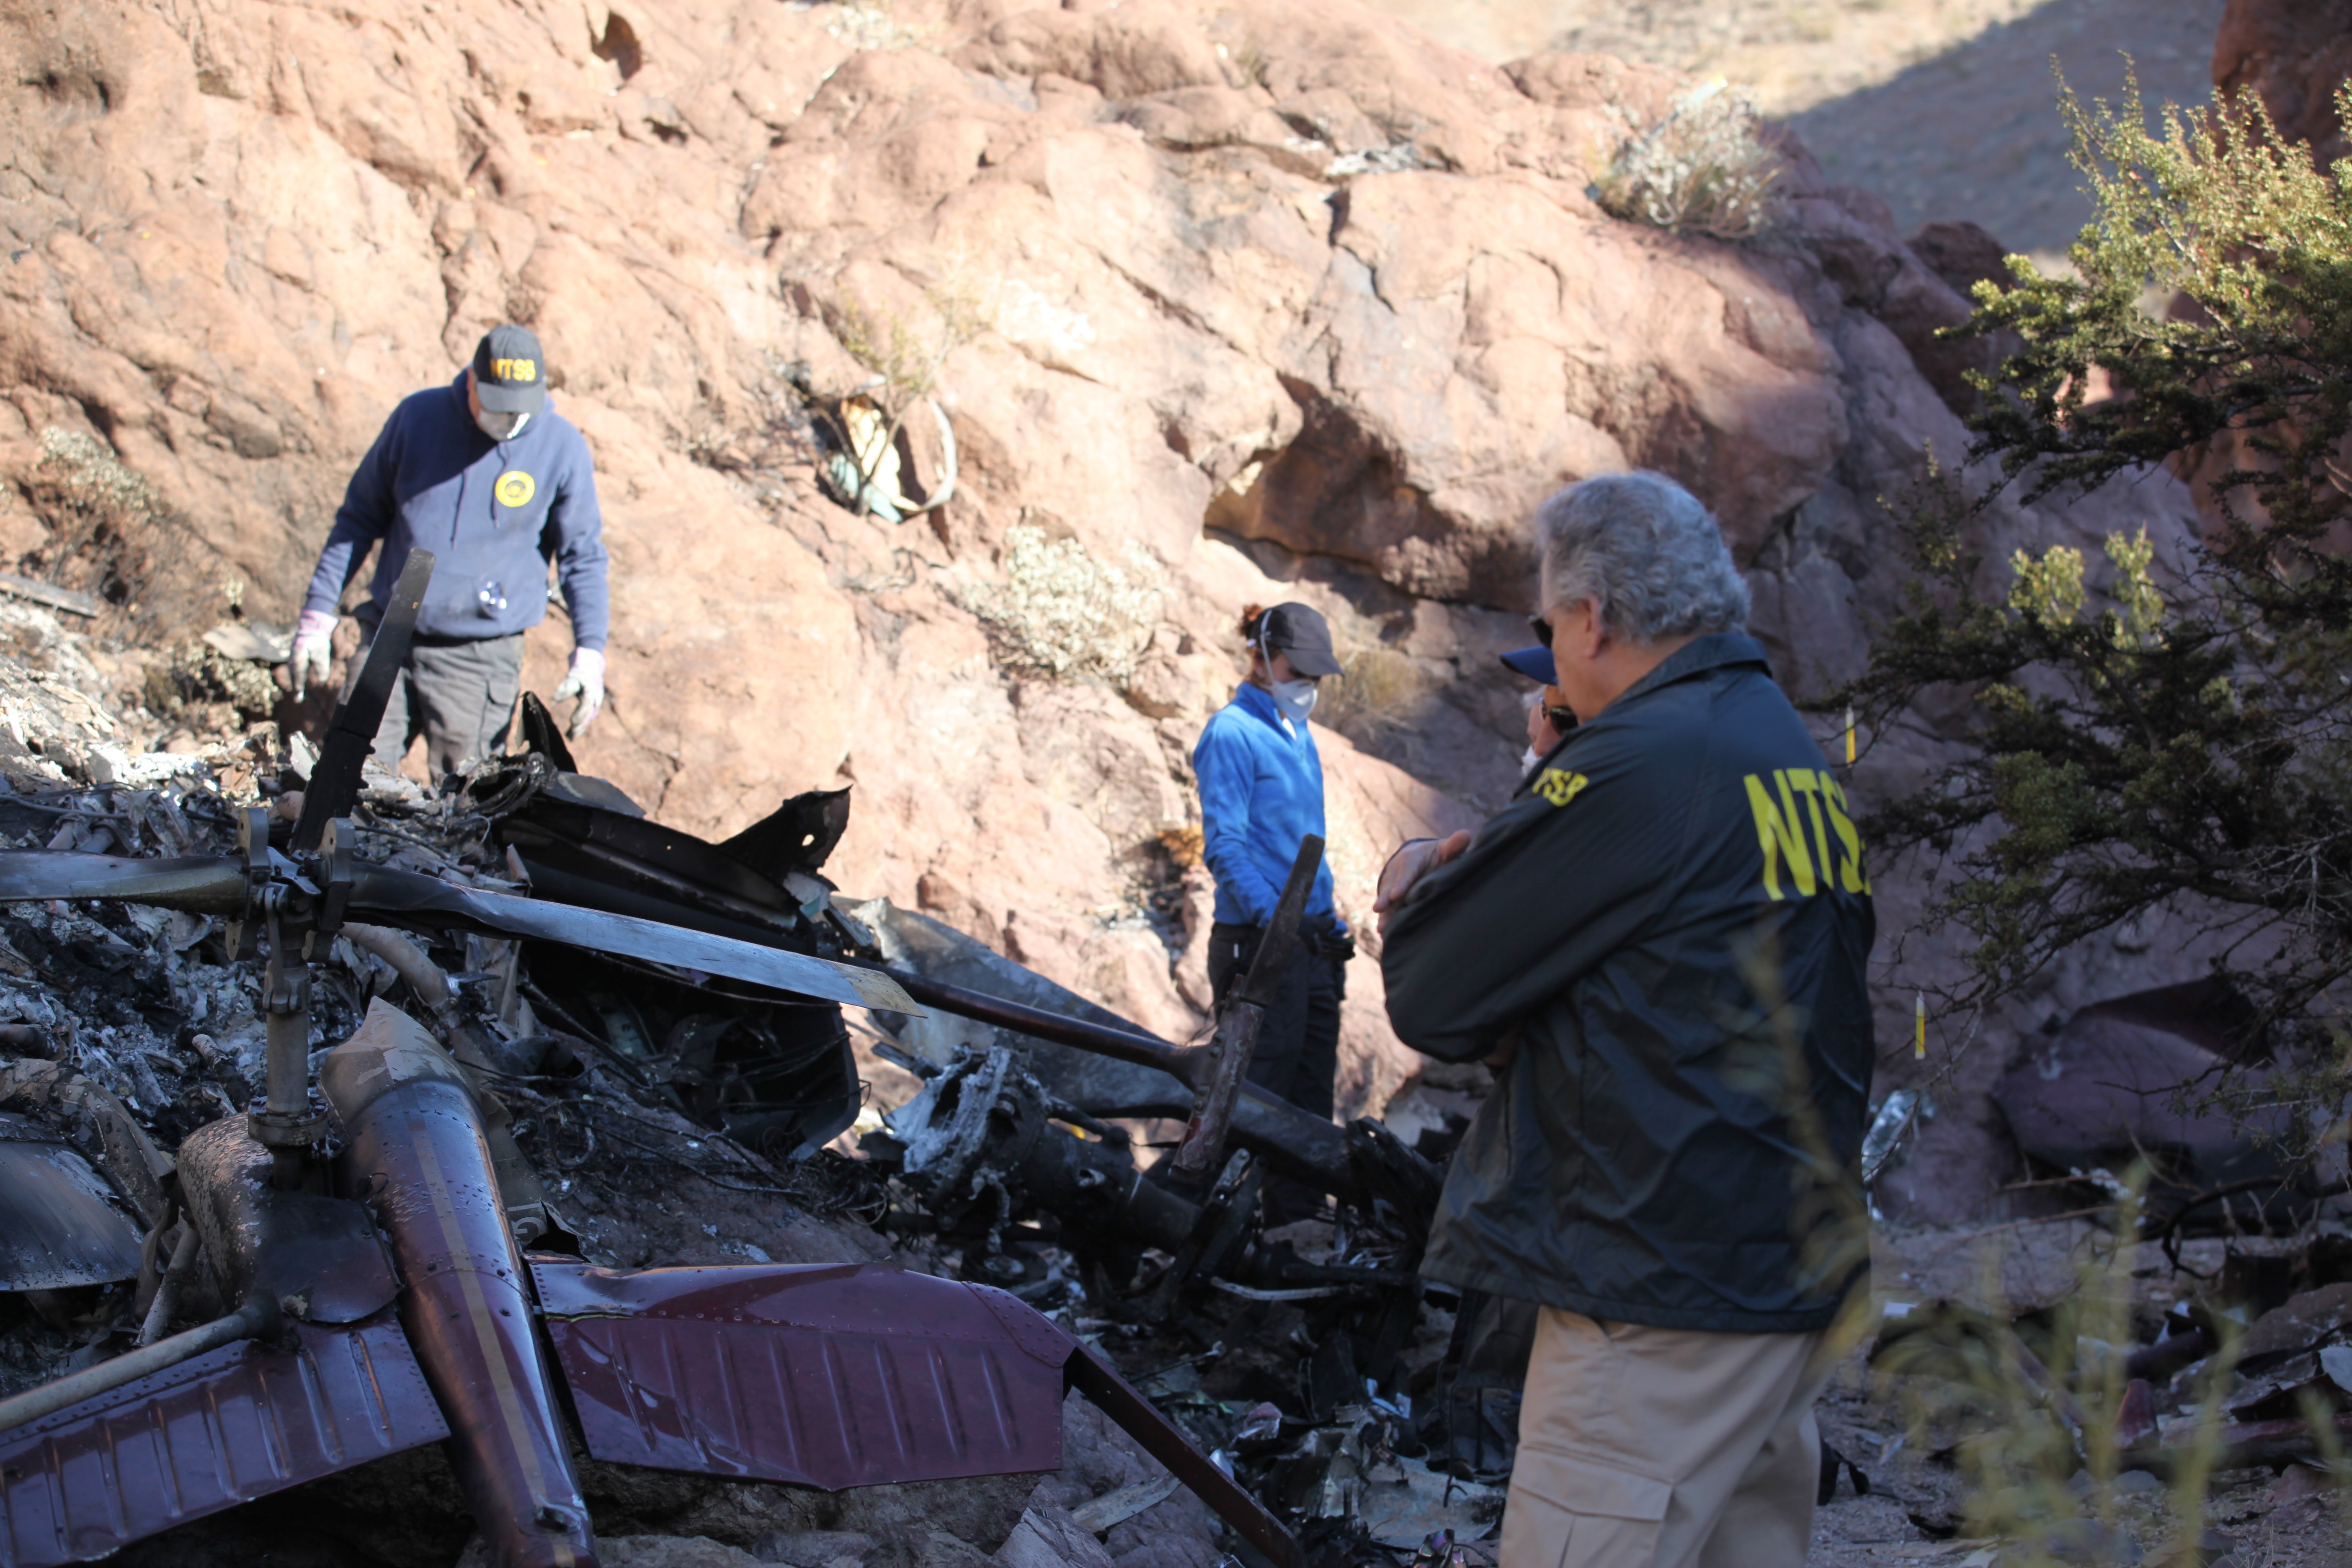 NTSB Releases Preliminary Report In Fatal Tour Helicopter Crash  FOX5 Vegas